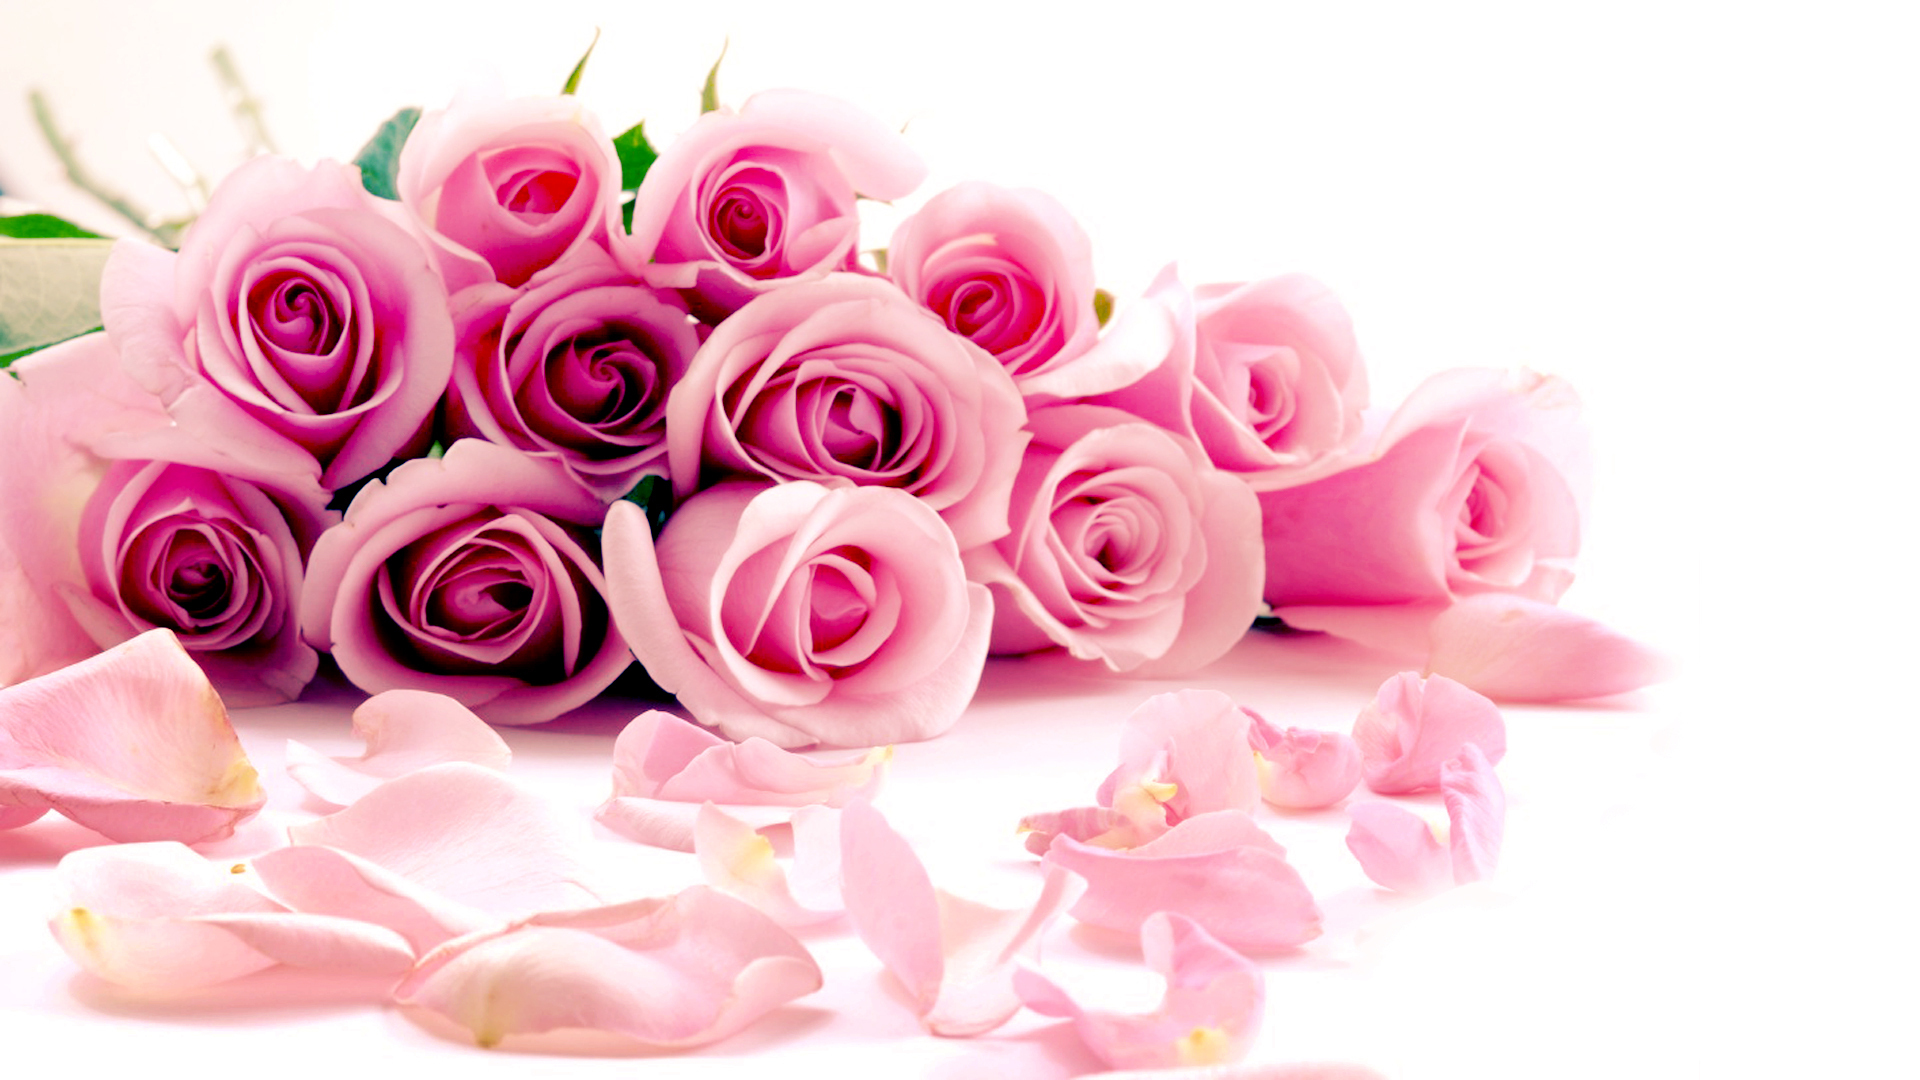 Pink Roses Wallpapers Wallpaper High Definition High Quality